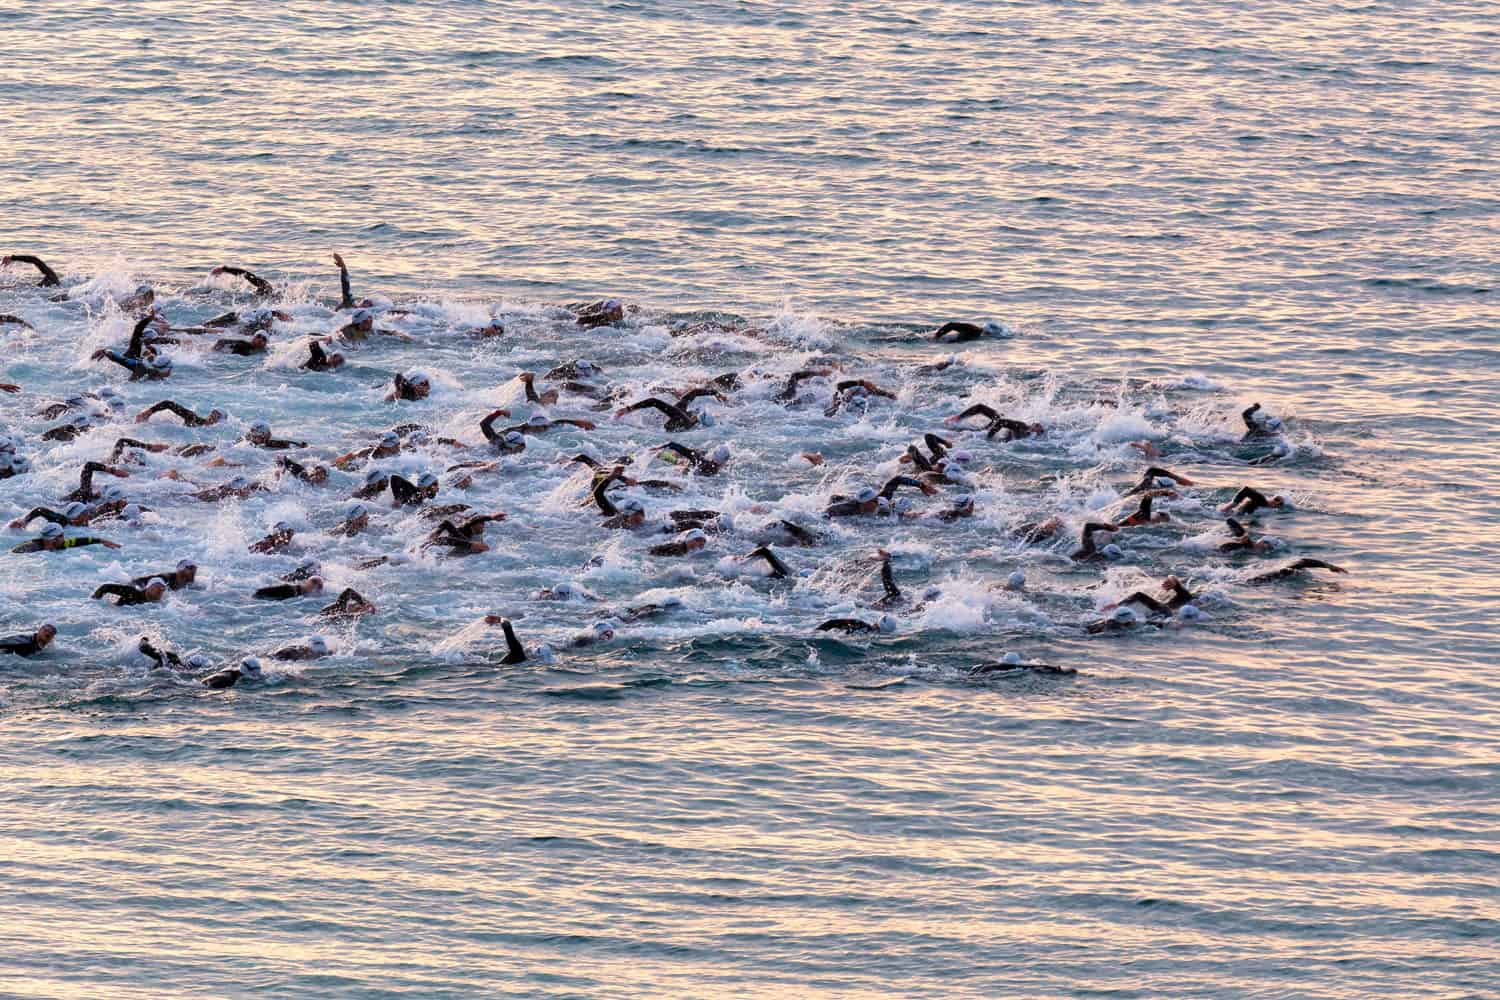 Triathletes swimming on open water competing on the Ironman triathlon